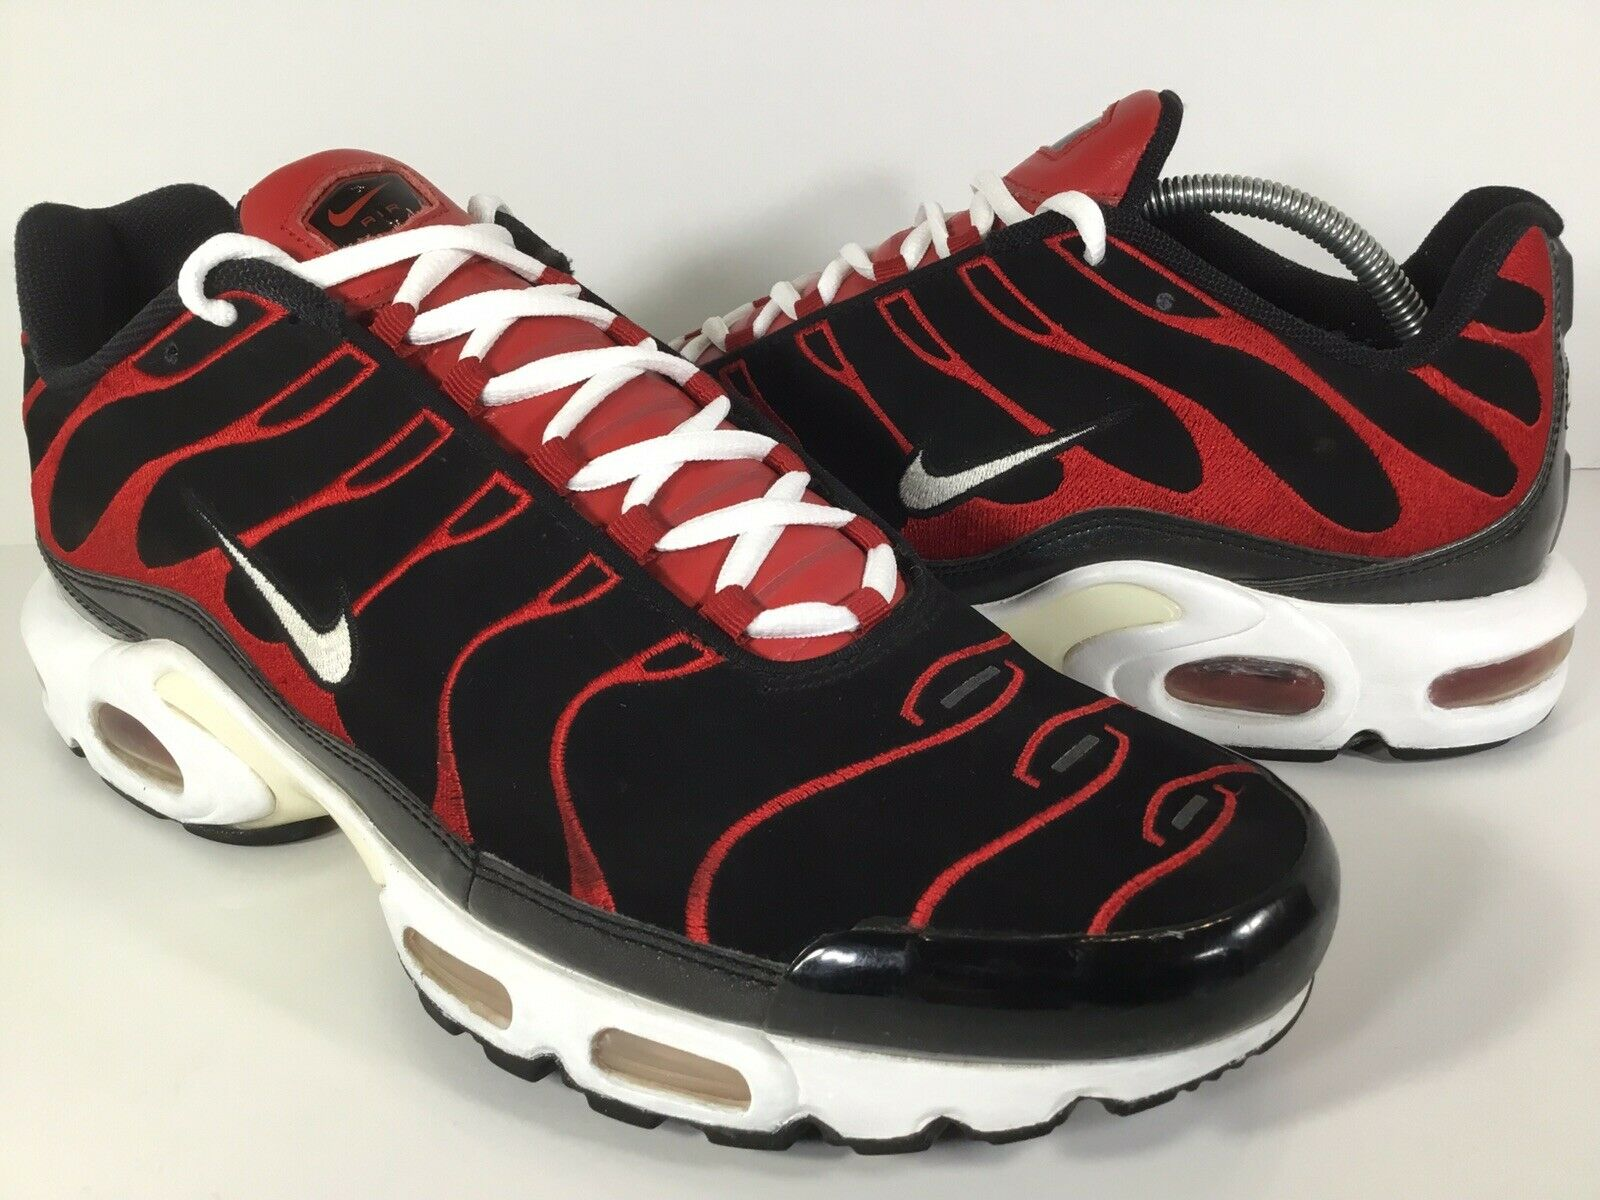 Nike Air Max Plus Tn Black White Red Leather Suede 2006 Size 13 Rare 310721-011